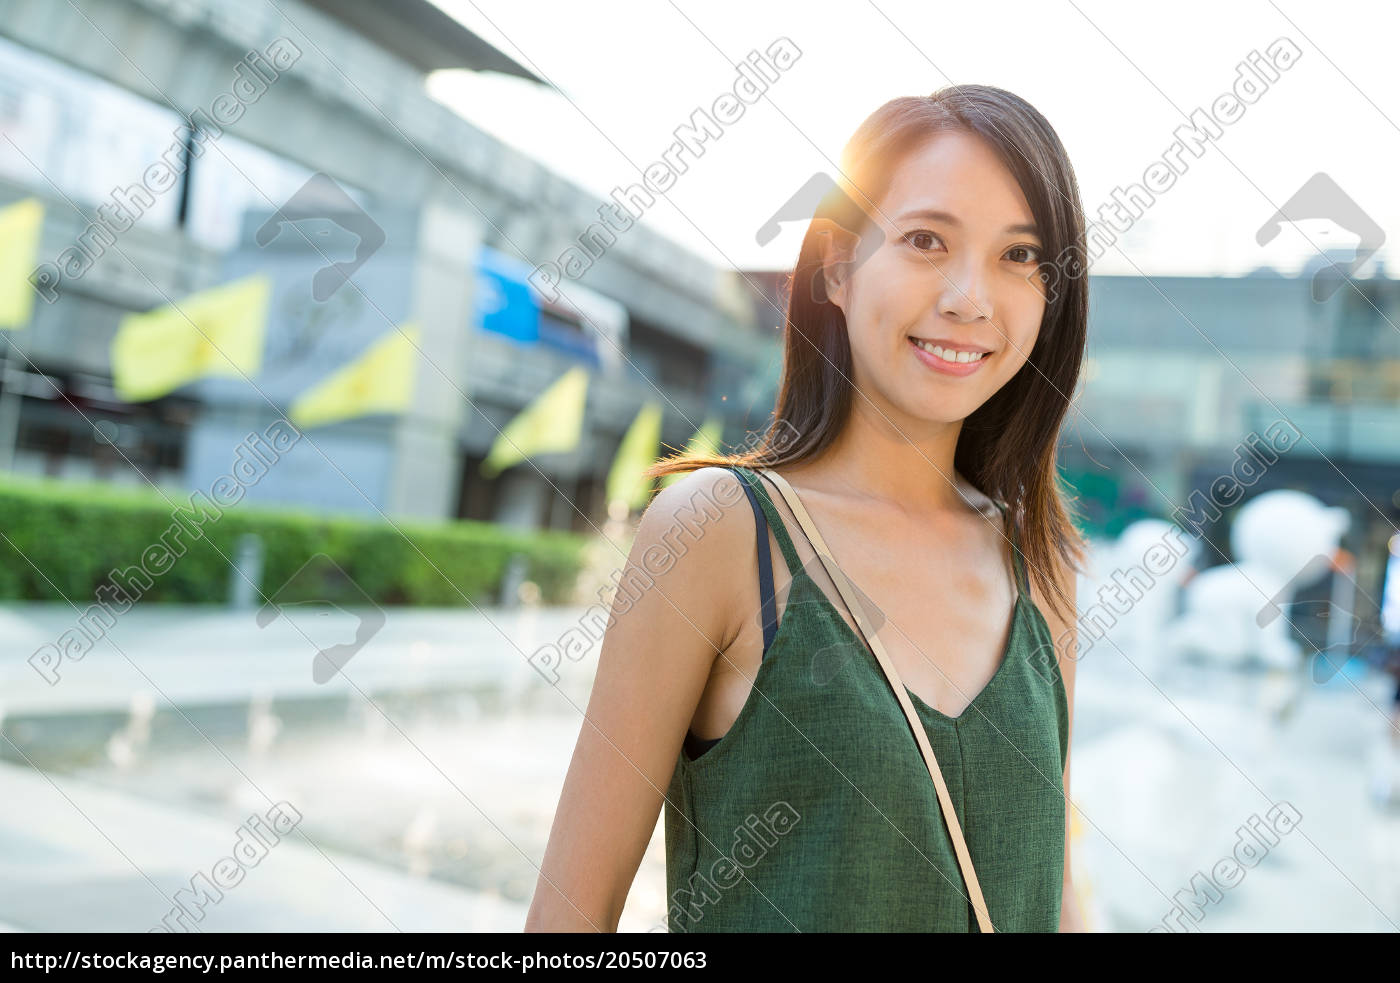 young, woman, at, street, portrait - 20507063